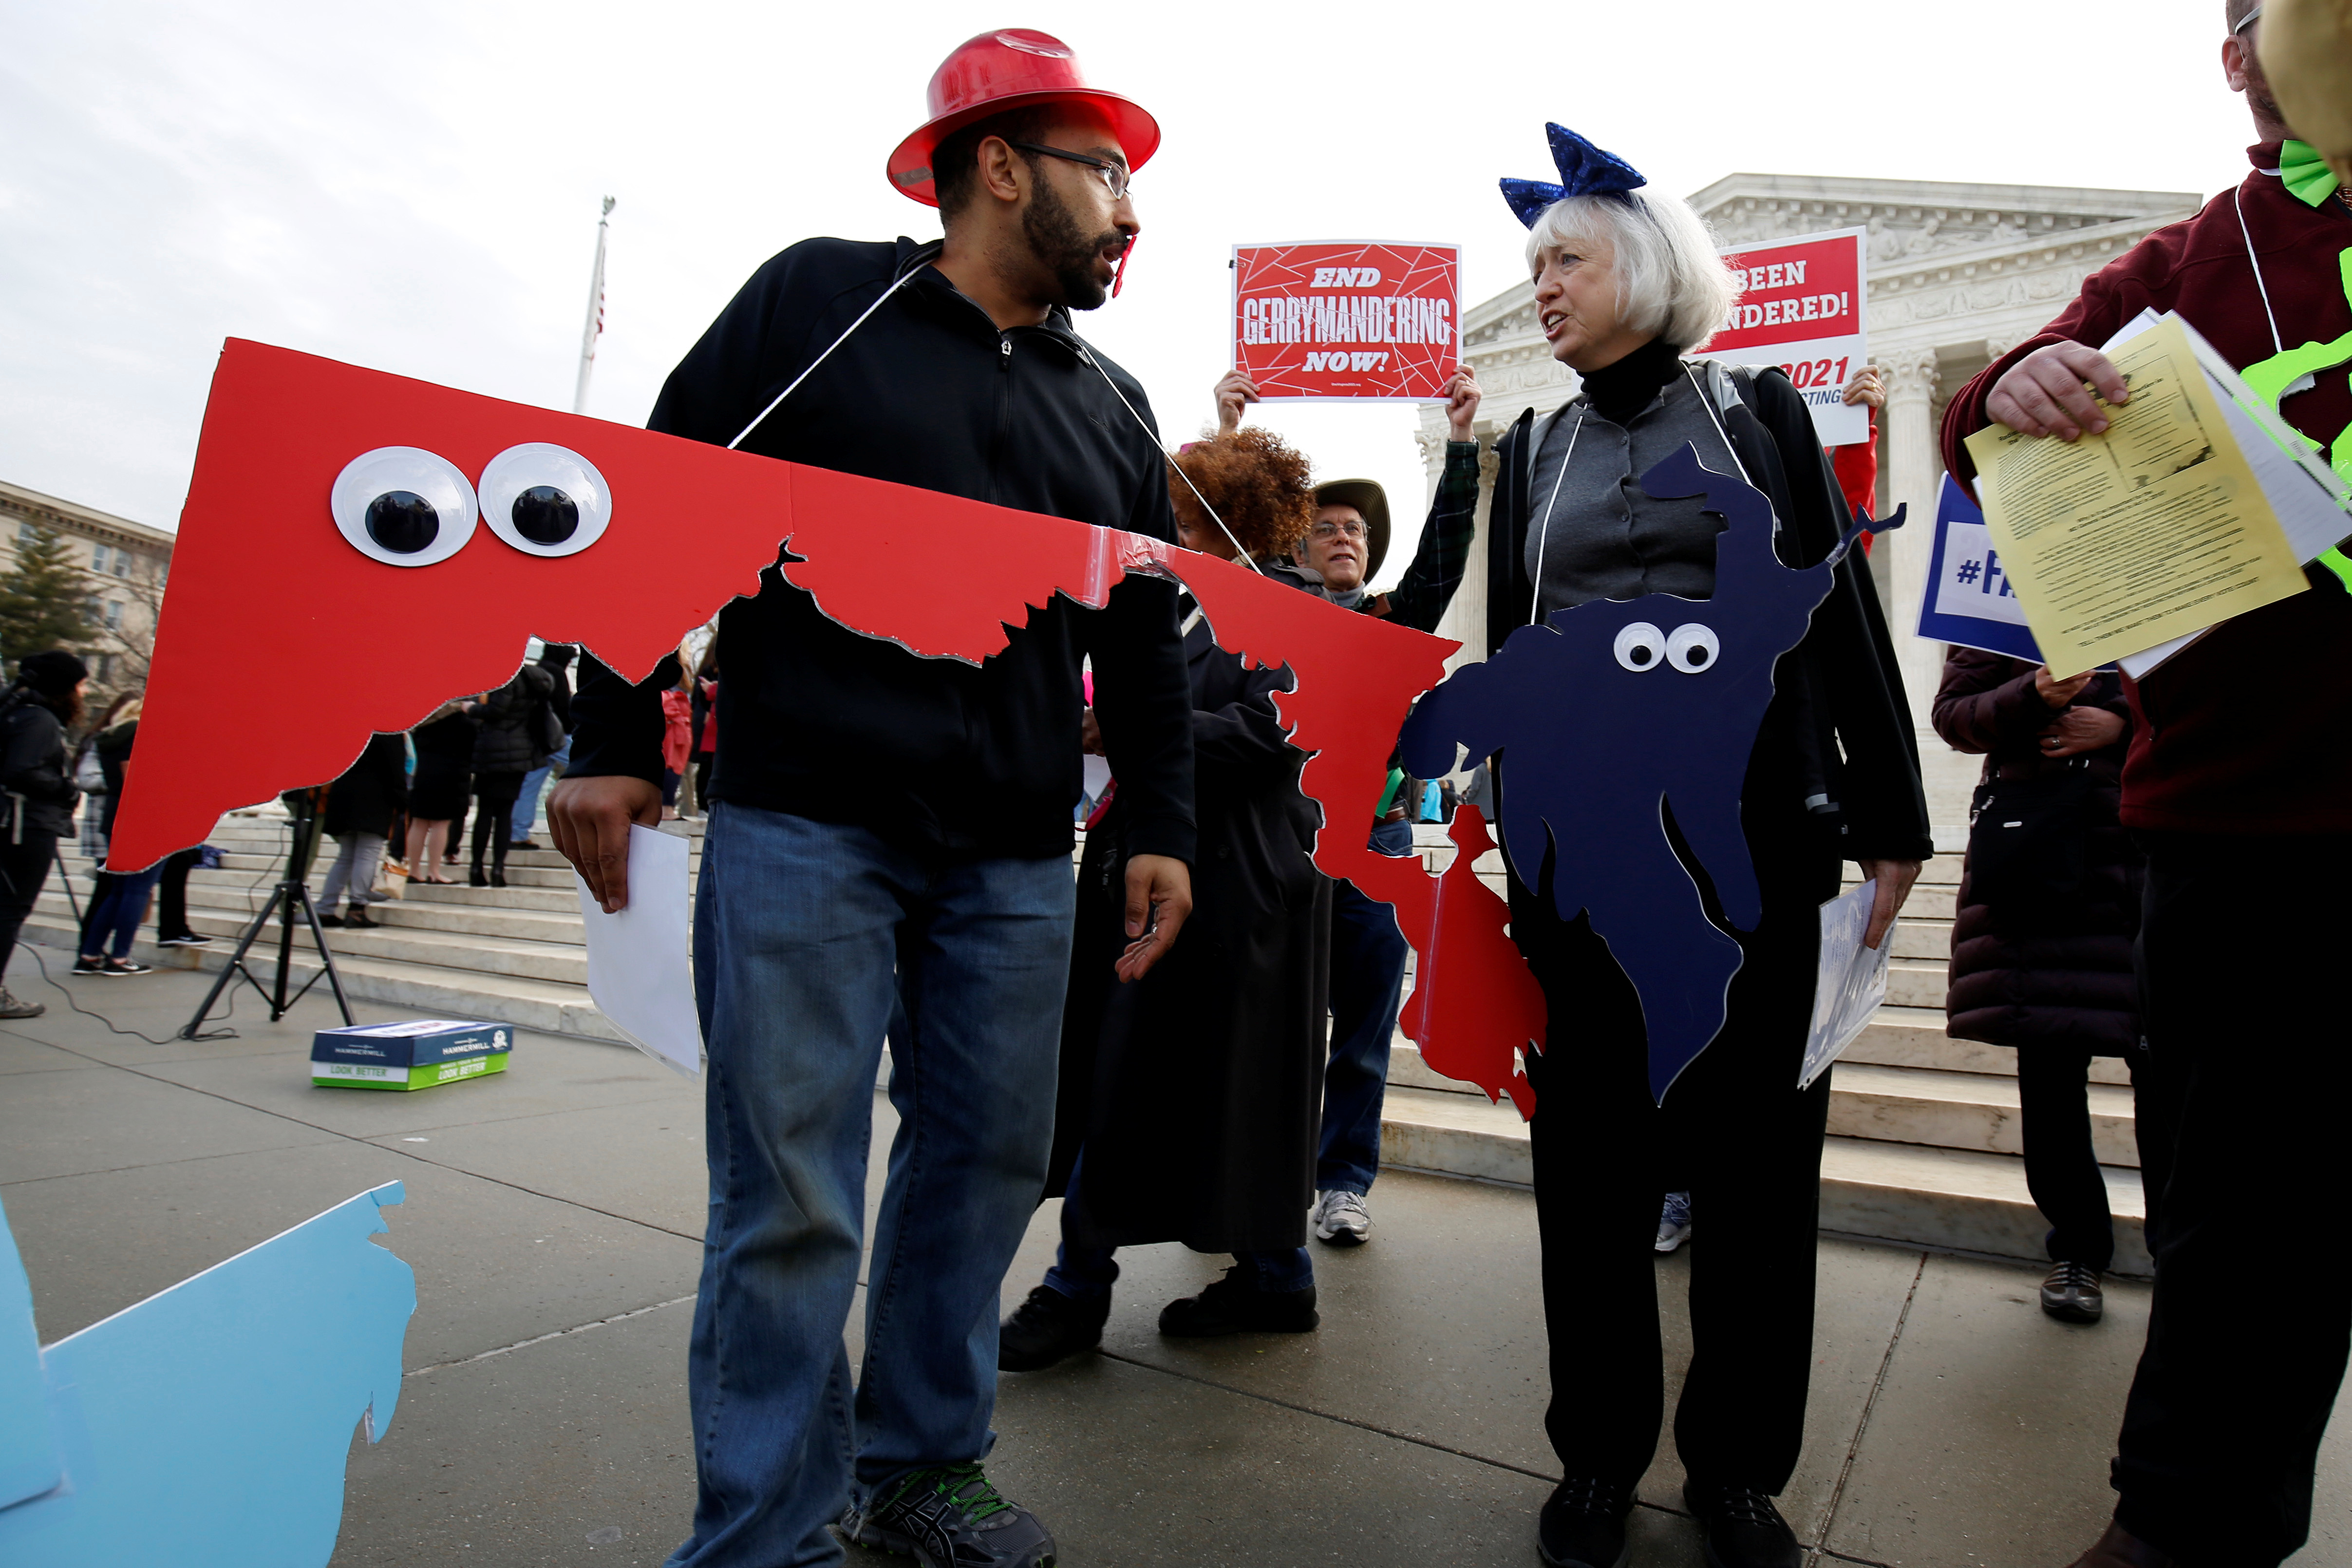 Demonstrators rally with cut-outs of congressional districts in front of the Supreme Court before oral arguments on Benisek v. Lamone, a redistricting case on whether Democratic lawmakers in Maryland unlawfully drew a congressional district in a way that would prevent a Republican candidate from winning. REUTERS/Joshua Roberts